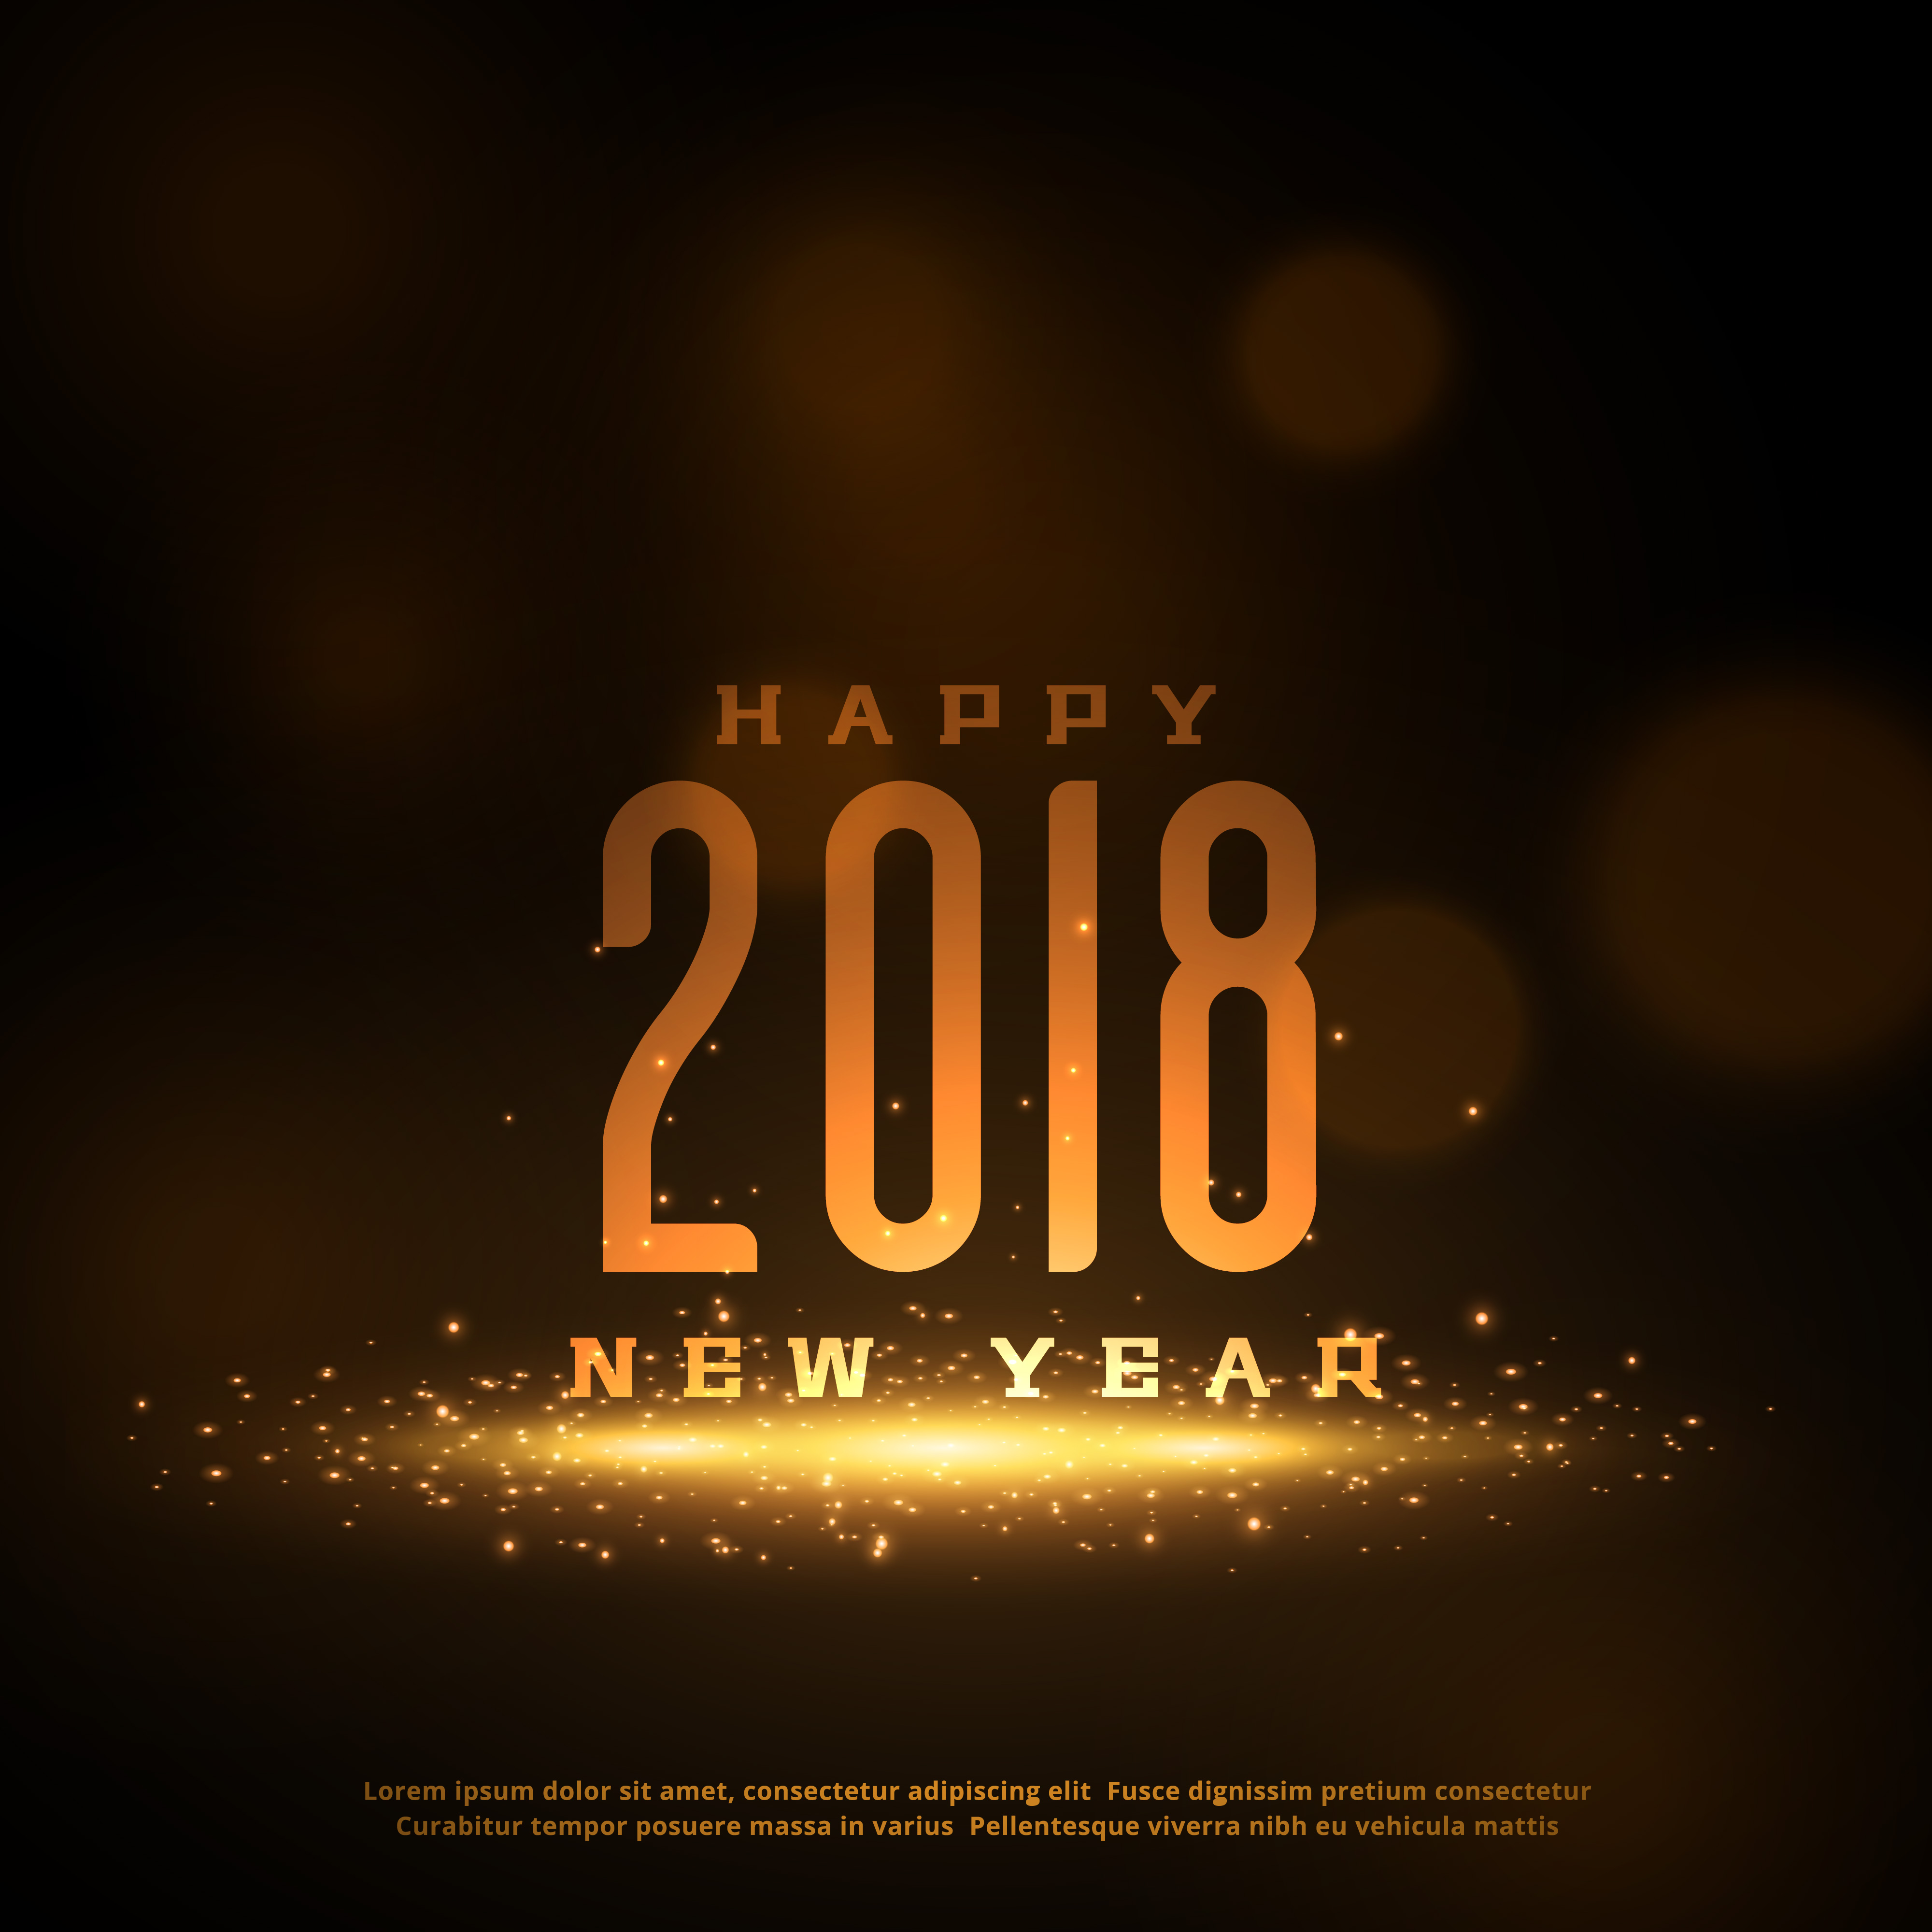 shiny 2018 happy new year greeting card design with sparkles download free vector art stock graphics images